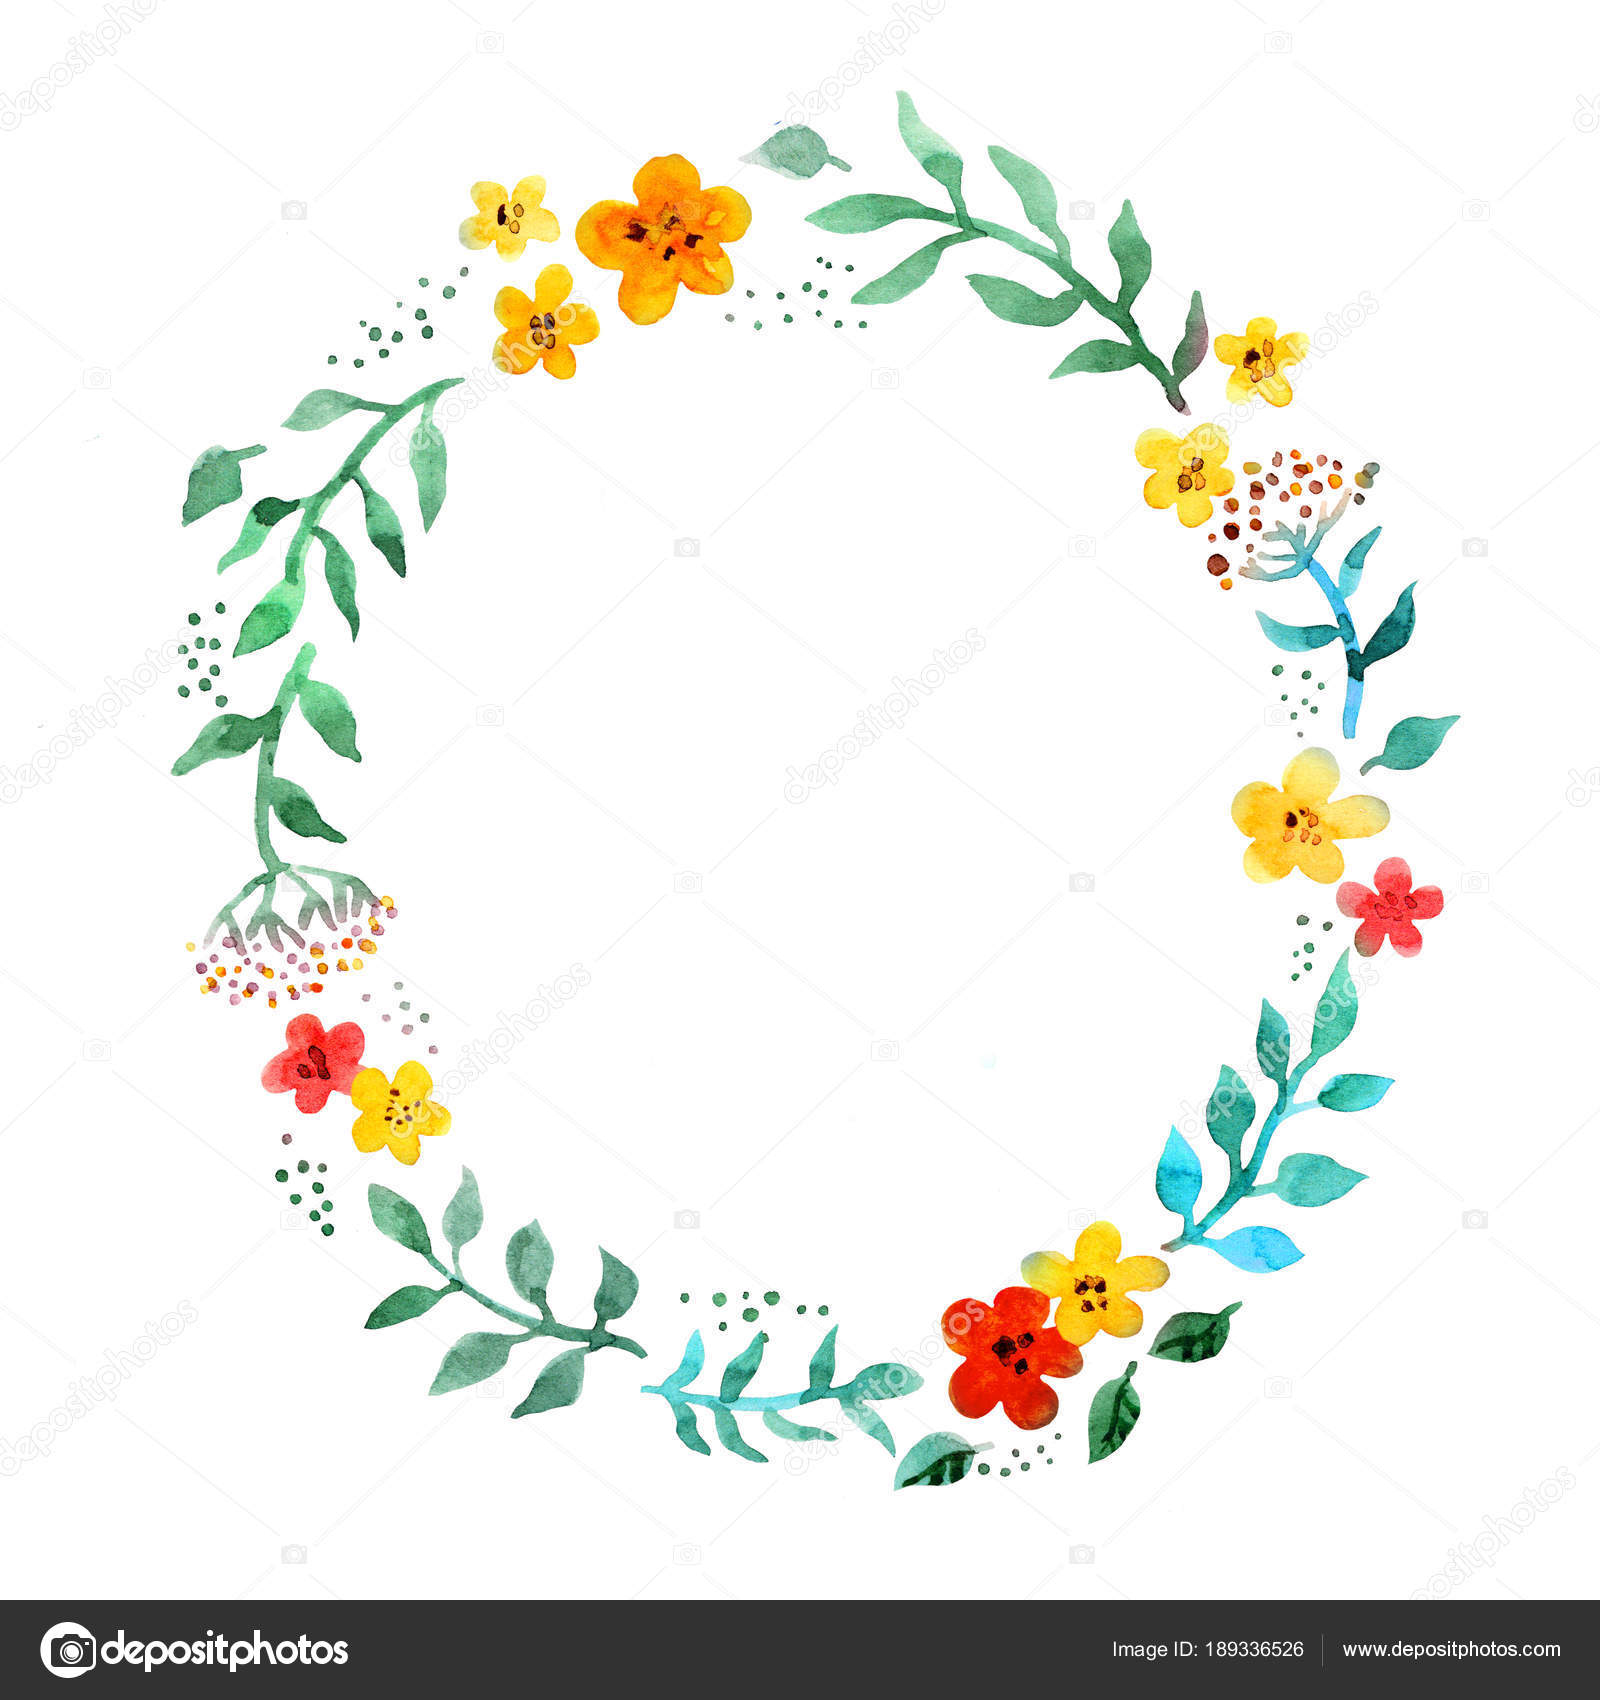 Floral Circle Wreath With Cute Flowers Watercolor Hand Painted Border Stock Photo